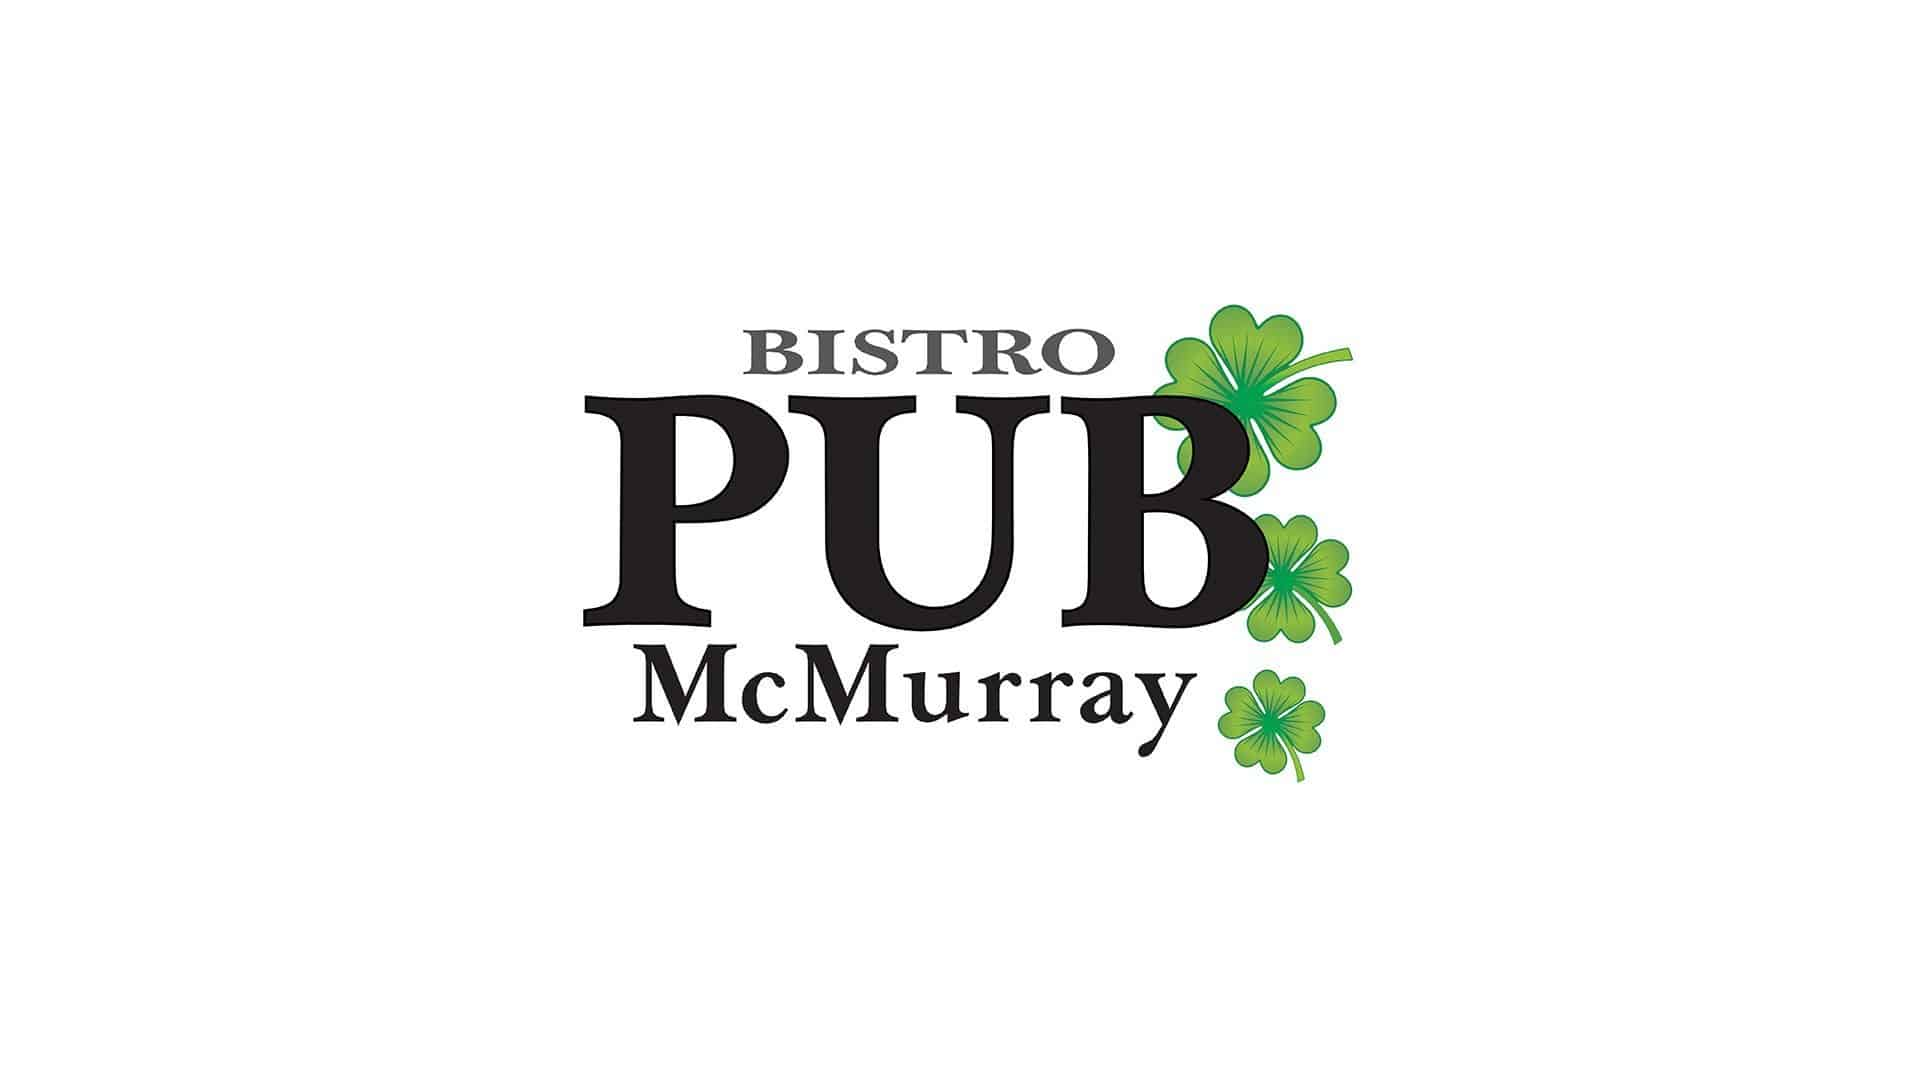 bistro-mcmurray